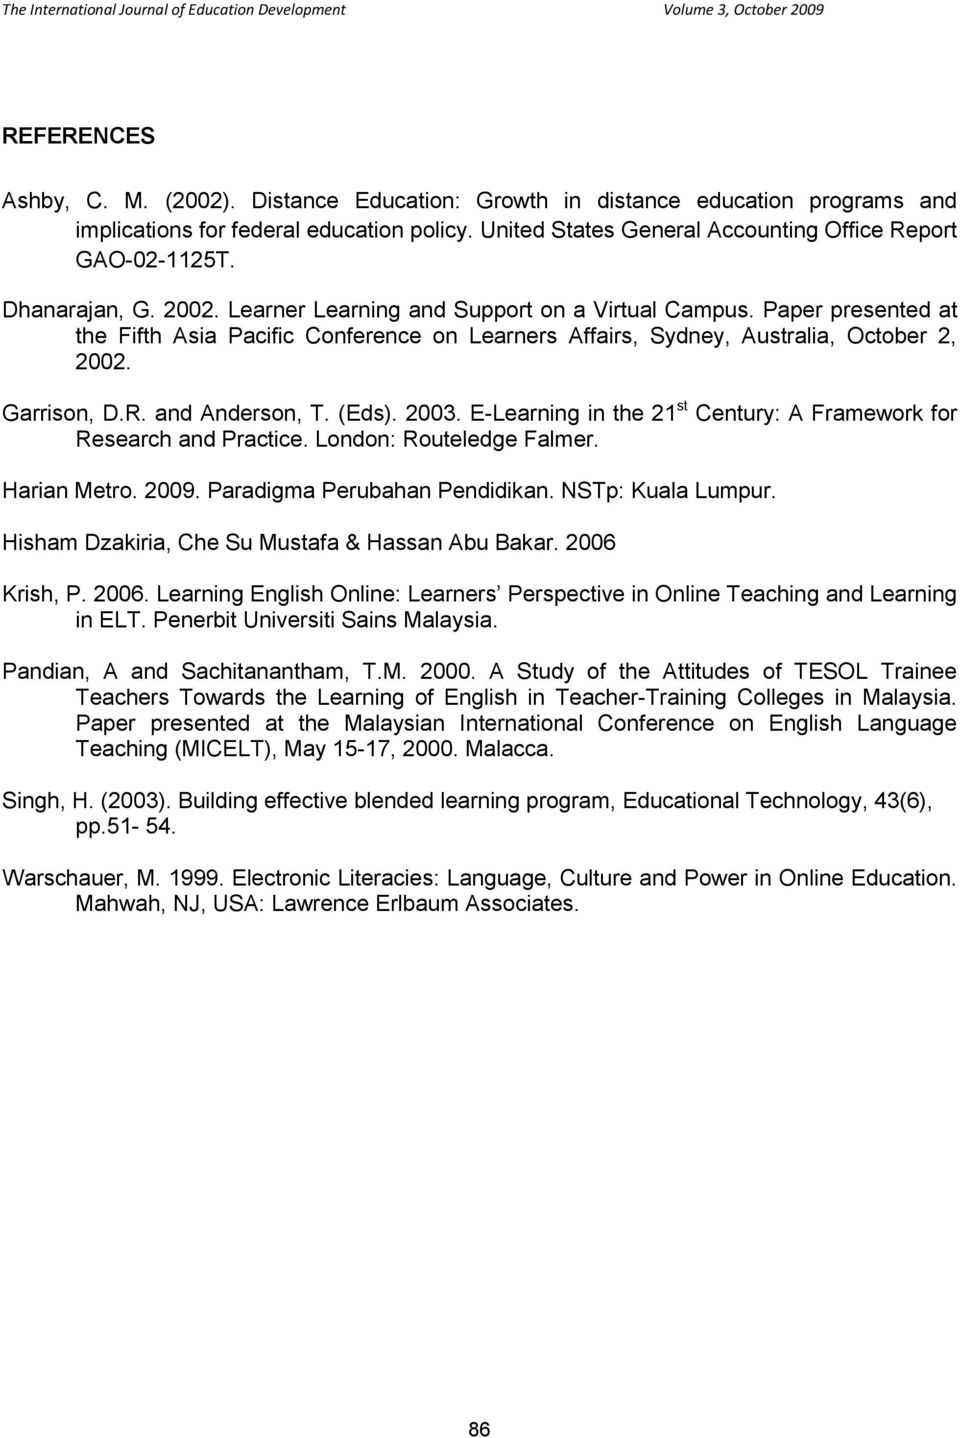 and Anderson, T. (Eds). 2003. E-Learning in the 21 st Century: A Framework for Research and Practice. London: Routeledge Falmer. Harian Metro. 2009. Paradigma Perubahan Pendidikan. NSTp: Kuala Lumpur.